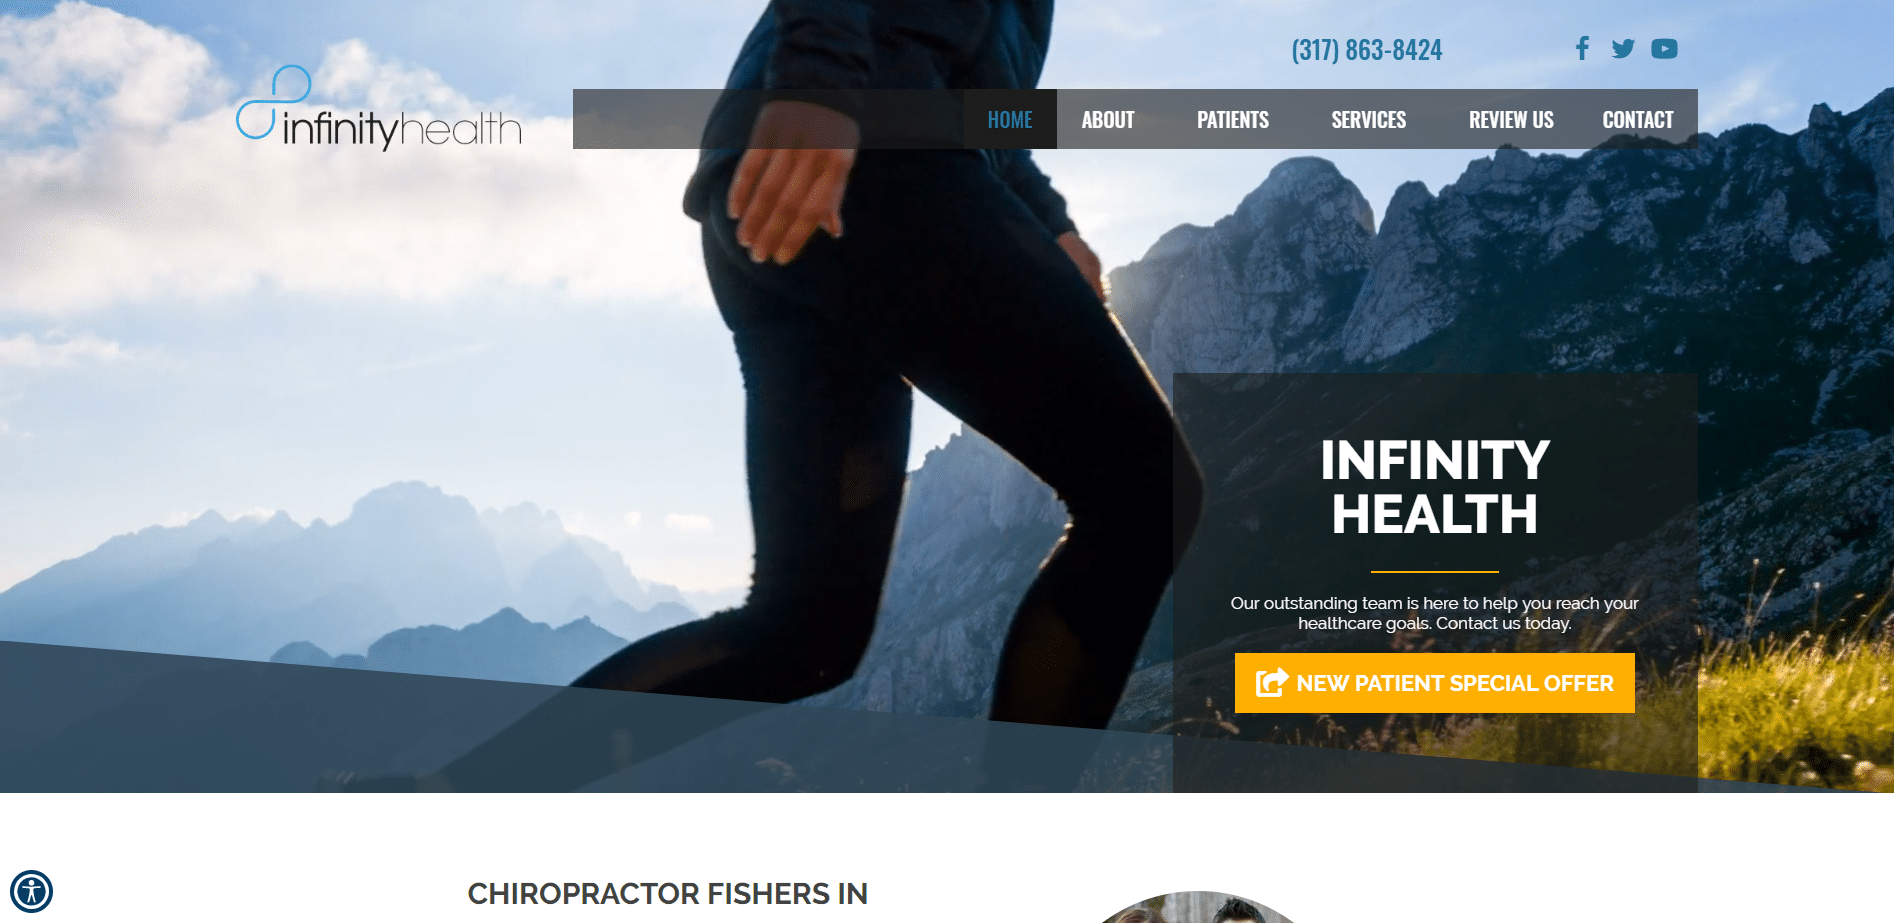 Chiropractor Fishers IN Infinity Health